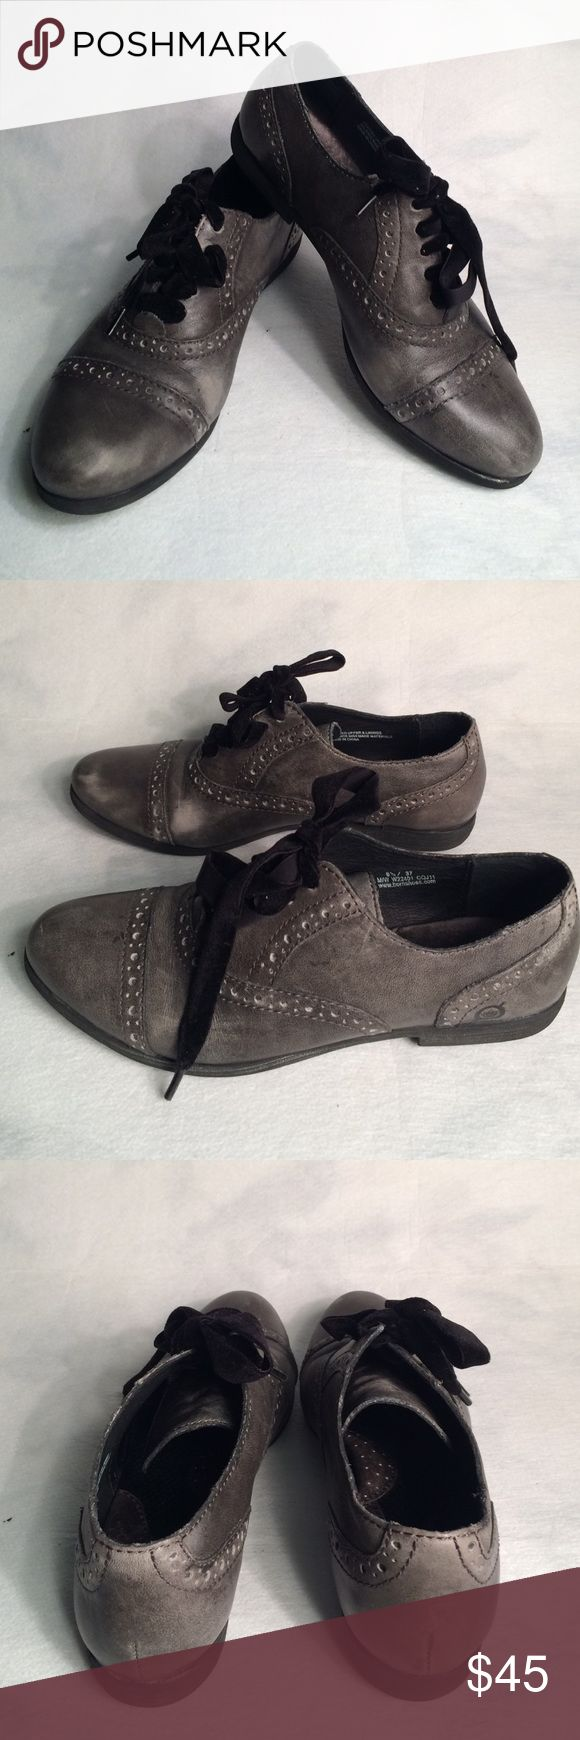 Born leather oxfords Adorable gray Born oxfords. Distressed gray leather with cute velvet black shoe ties. Born shoes are incredibly comfy and these are the perfect addition to any outfit! Excellent grip soles. Size 6 1/2, 37 euro. Born Shoes Flats & Loafers